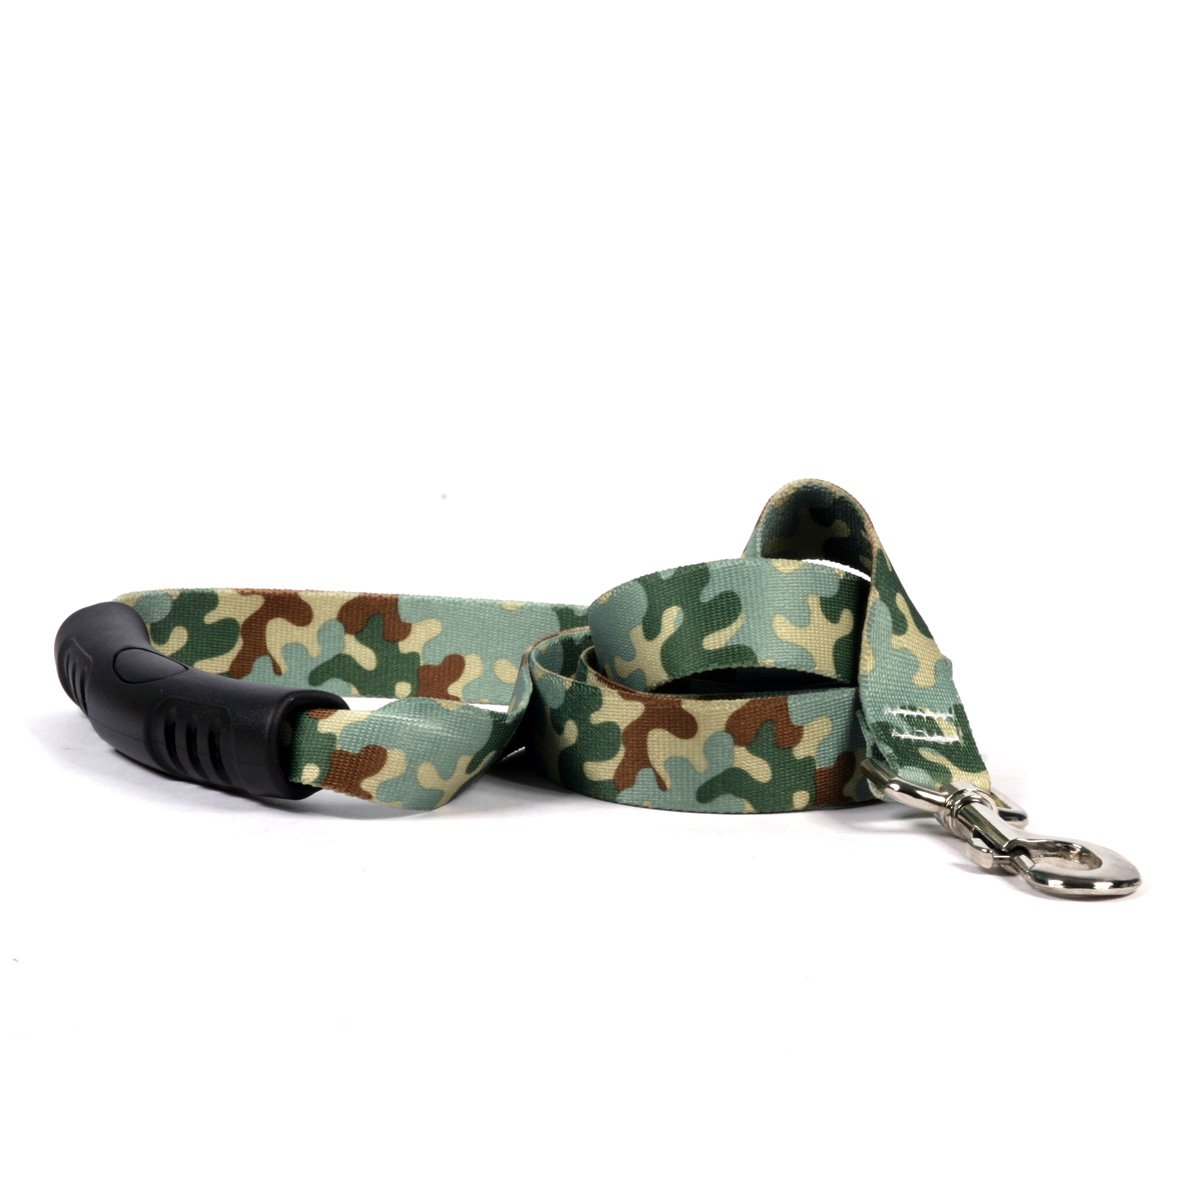 Yellow Dog Design Camo Ez-Grip Dog Leash With Comfort Handle 1'' Wide And 5' (60'') Long, Large